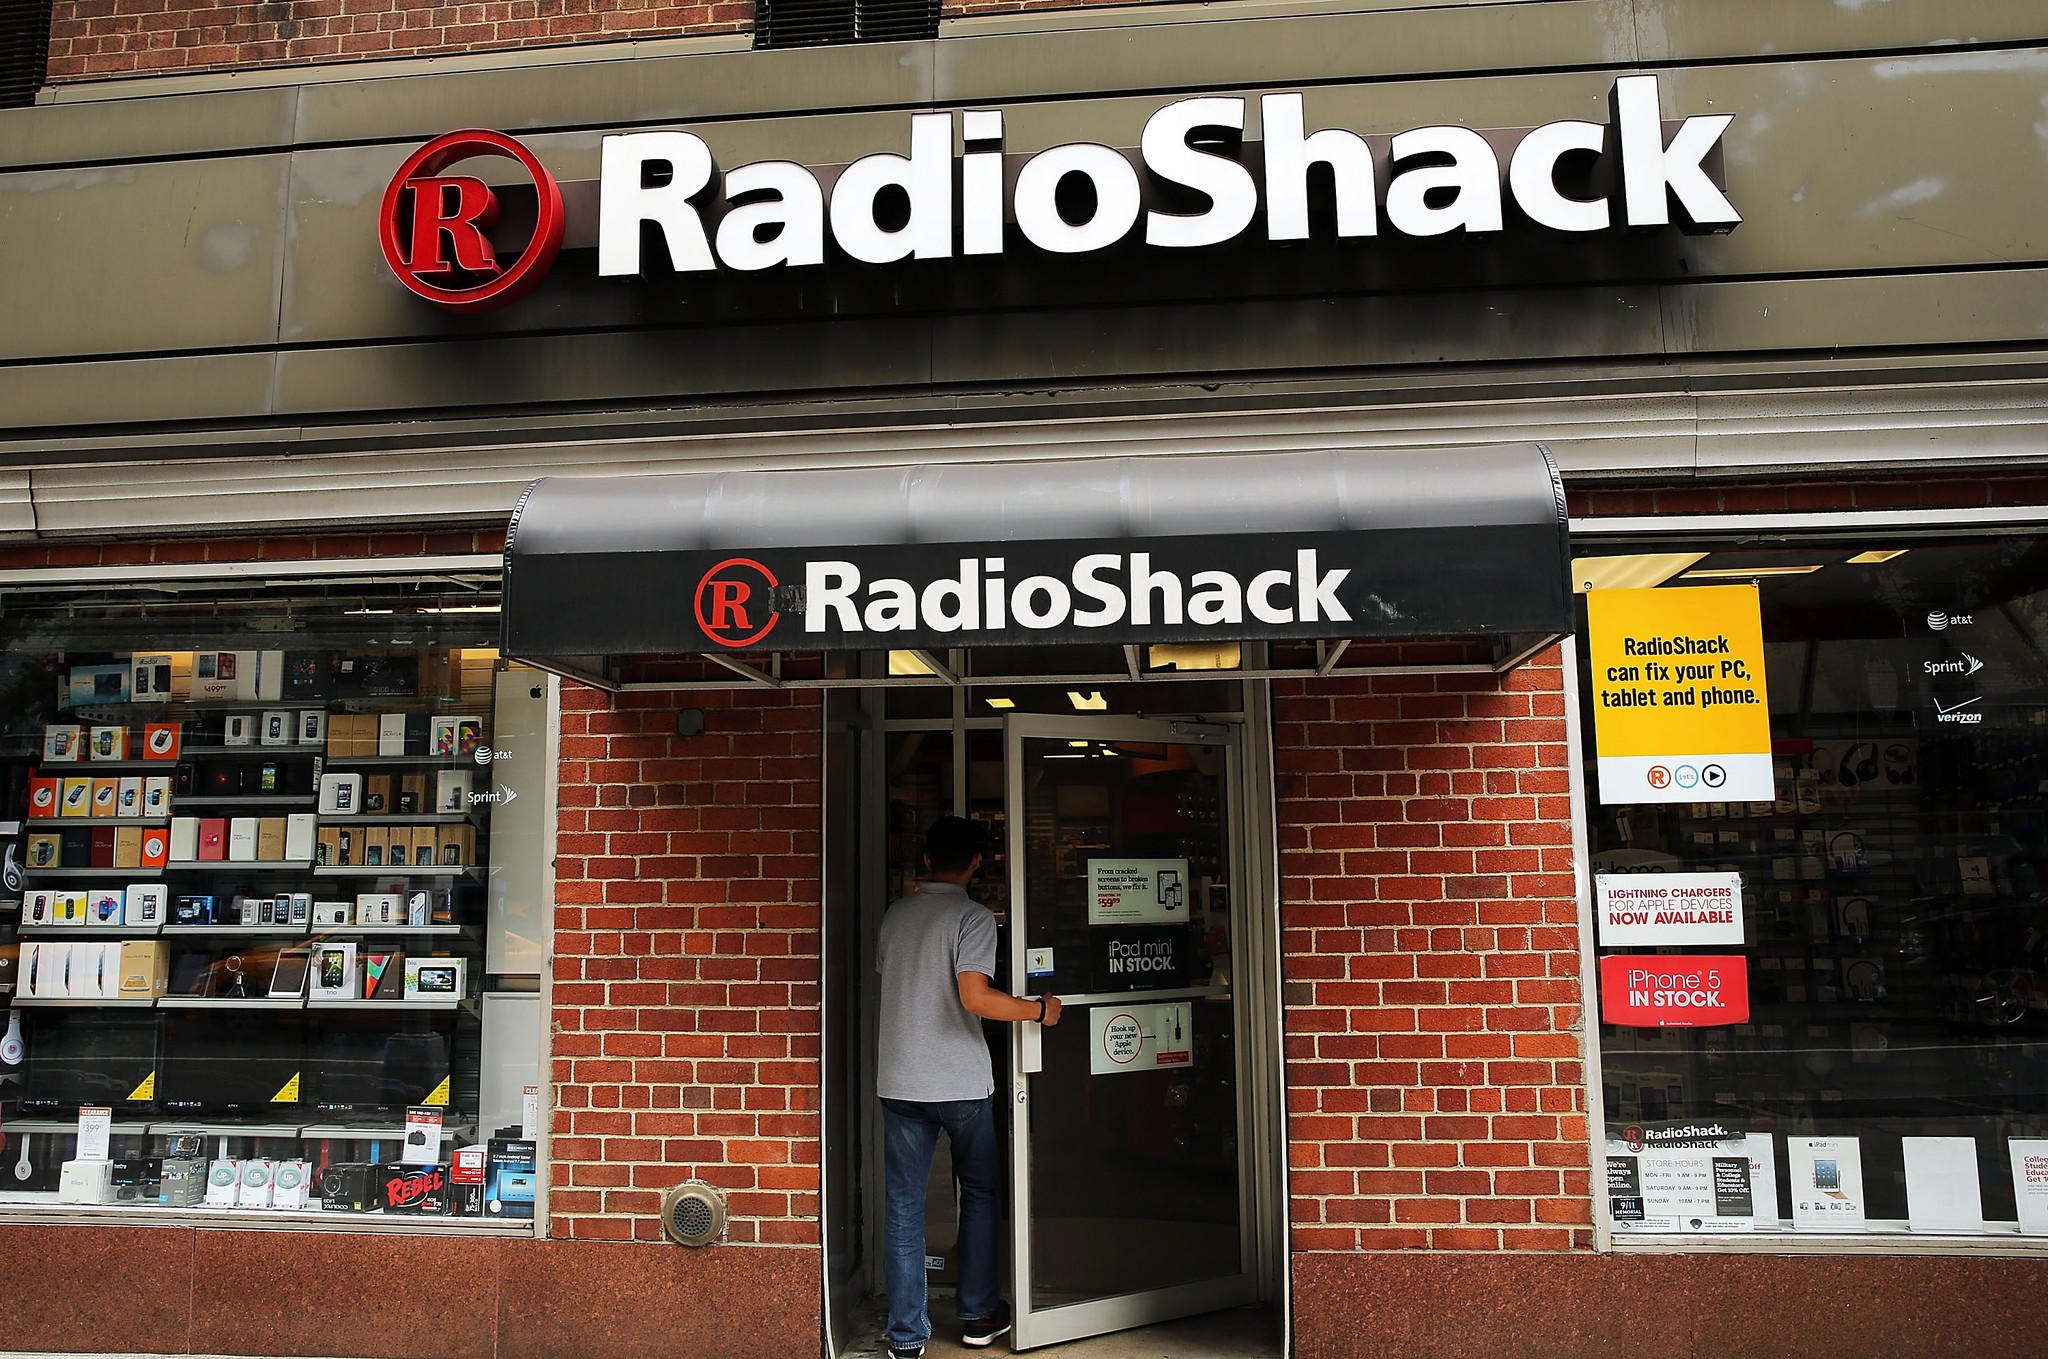 A New York City Radio Shack store in 2013.